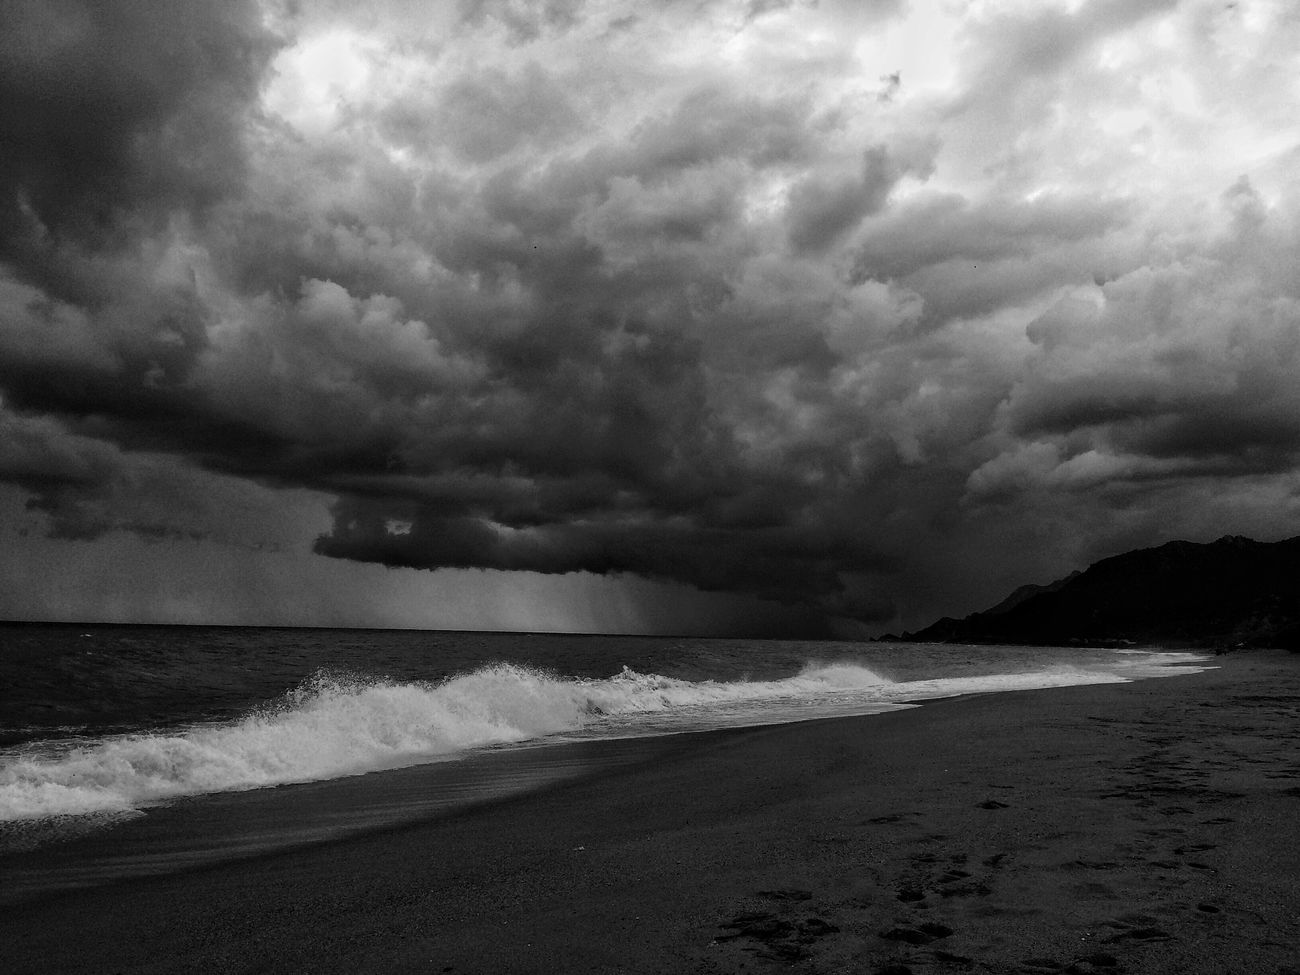 Storm incoming... Beach Sea Cloud - Sky Nature Storm Cloud Water Blackandwhite Monochrome Panorama Sky_collection Skyporn Black And White Black & White Bw_lover Bw_collection NEM Black&white EyeEmbnw